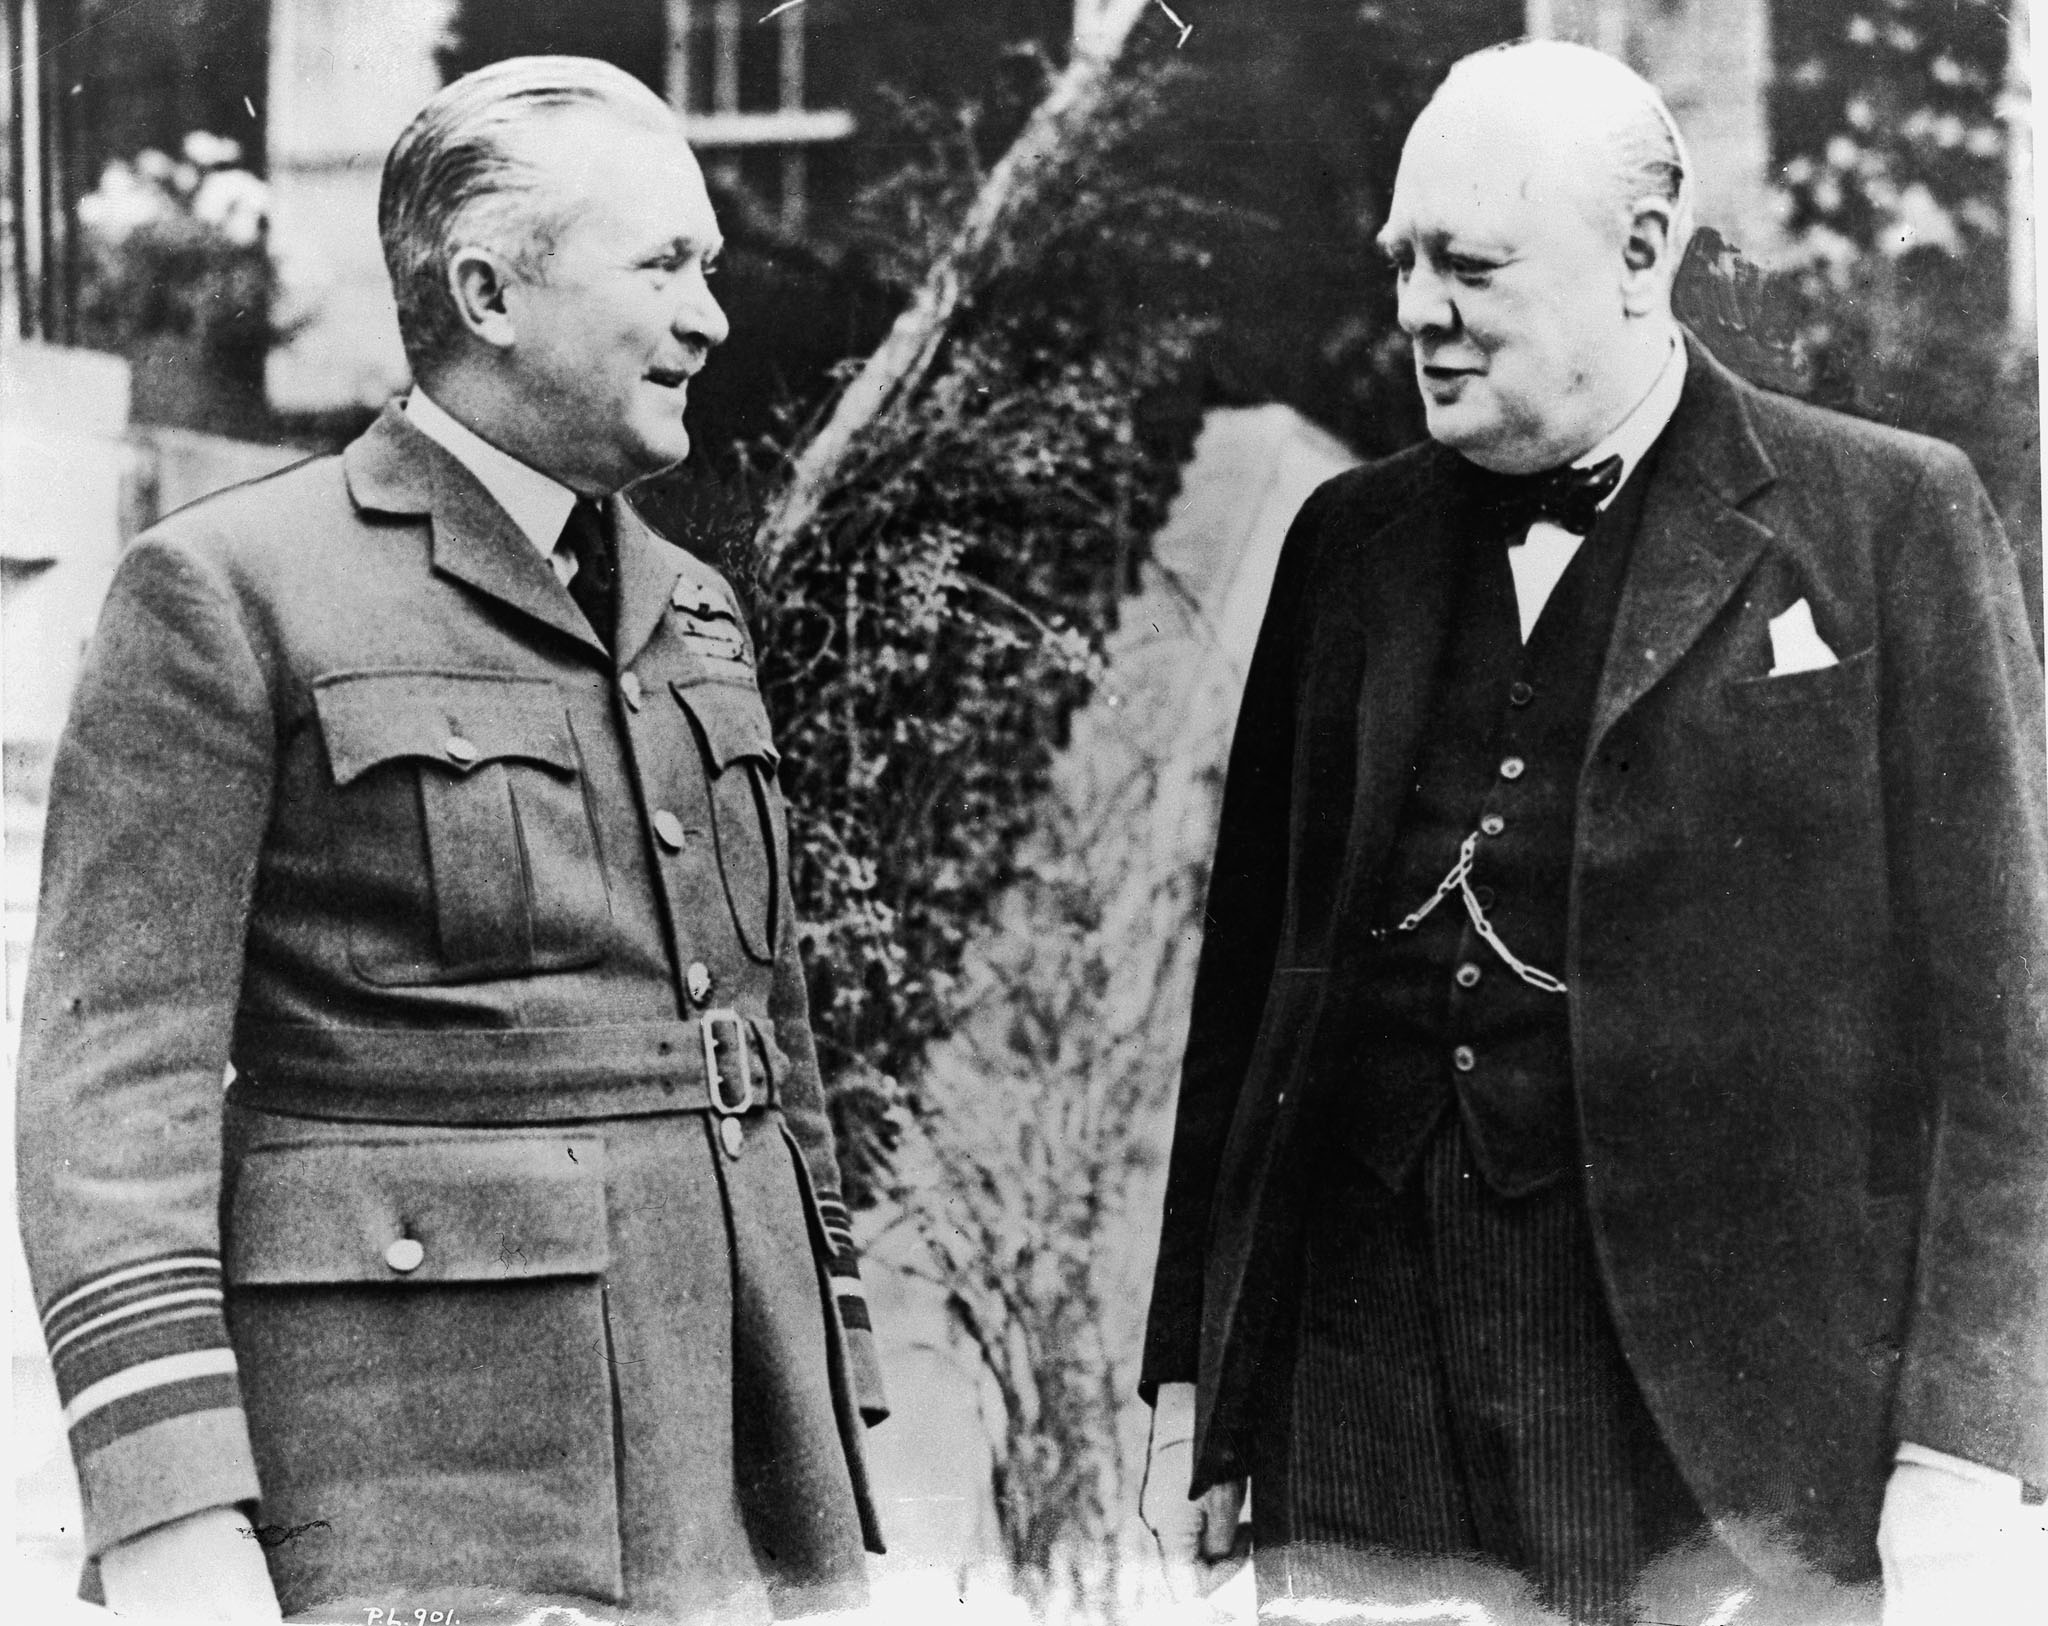 En 1940, le vice-maréchal de l'air William Avery Bishop discute avec le premier ministre Winston Churchill en Angleterre. PHOTO : MDN